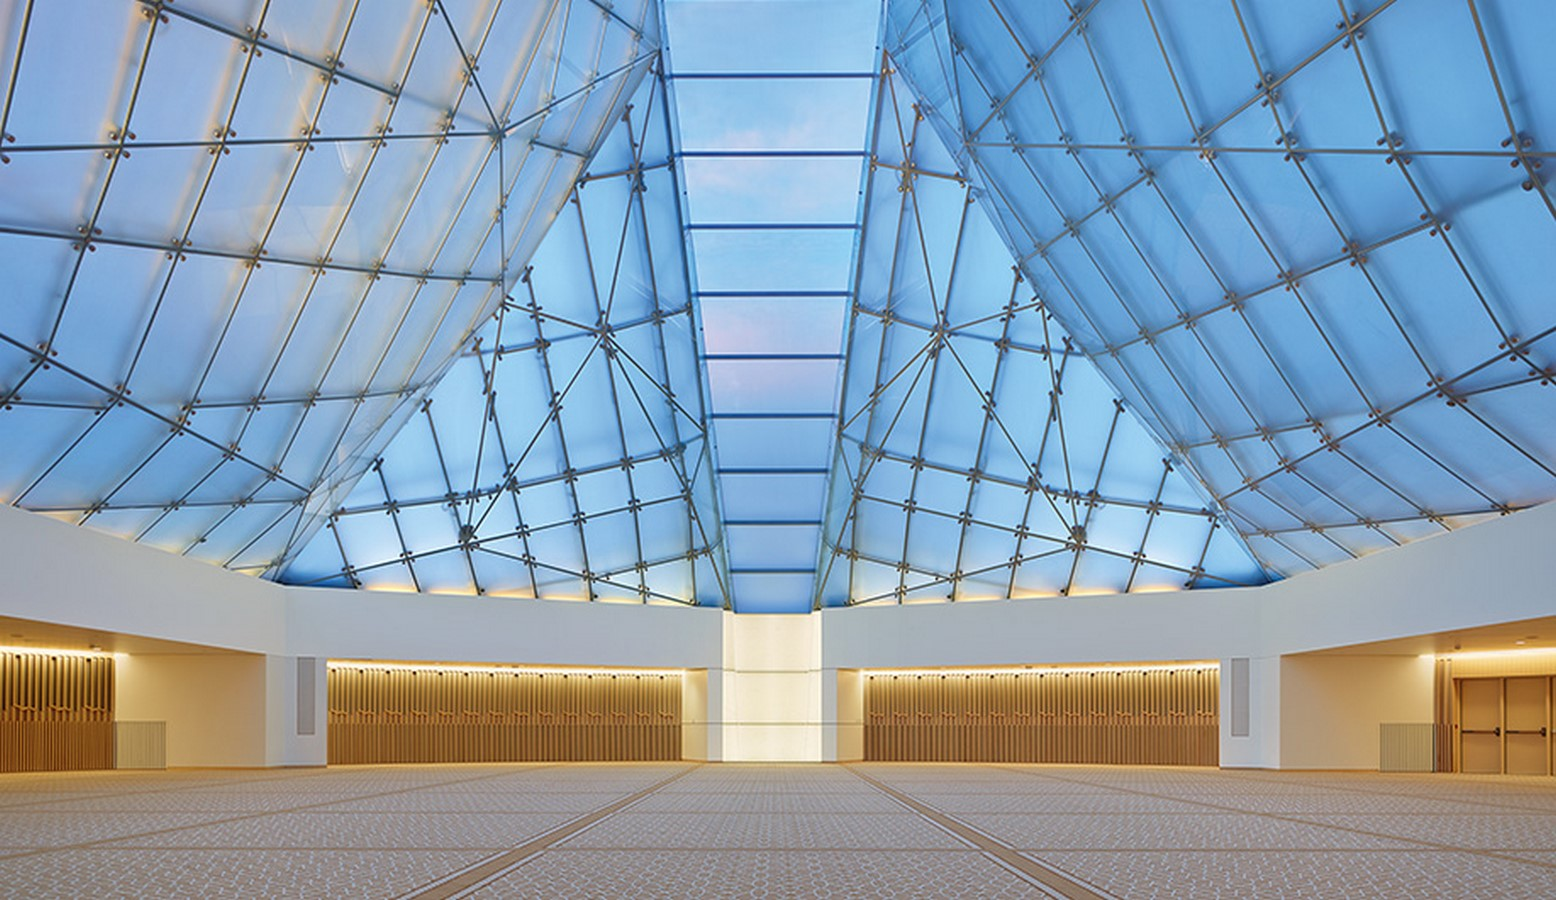 The Ismaili Centre by Charles Correa: Harmonizing Spiritual, Artistic and Natural world - Sheet11